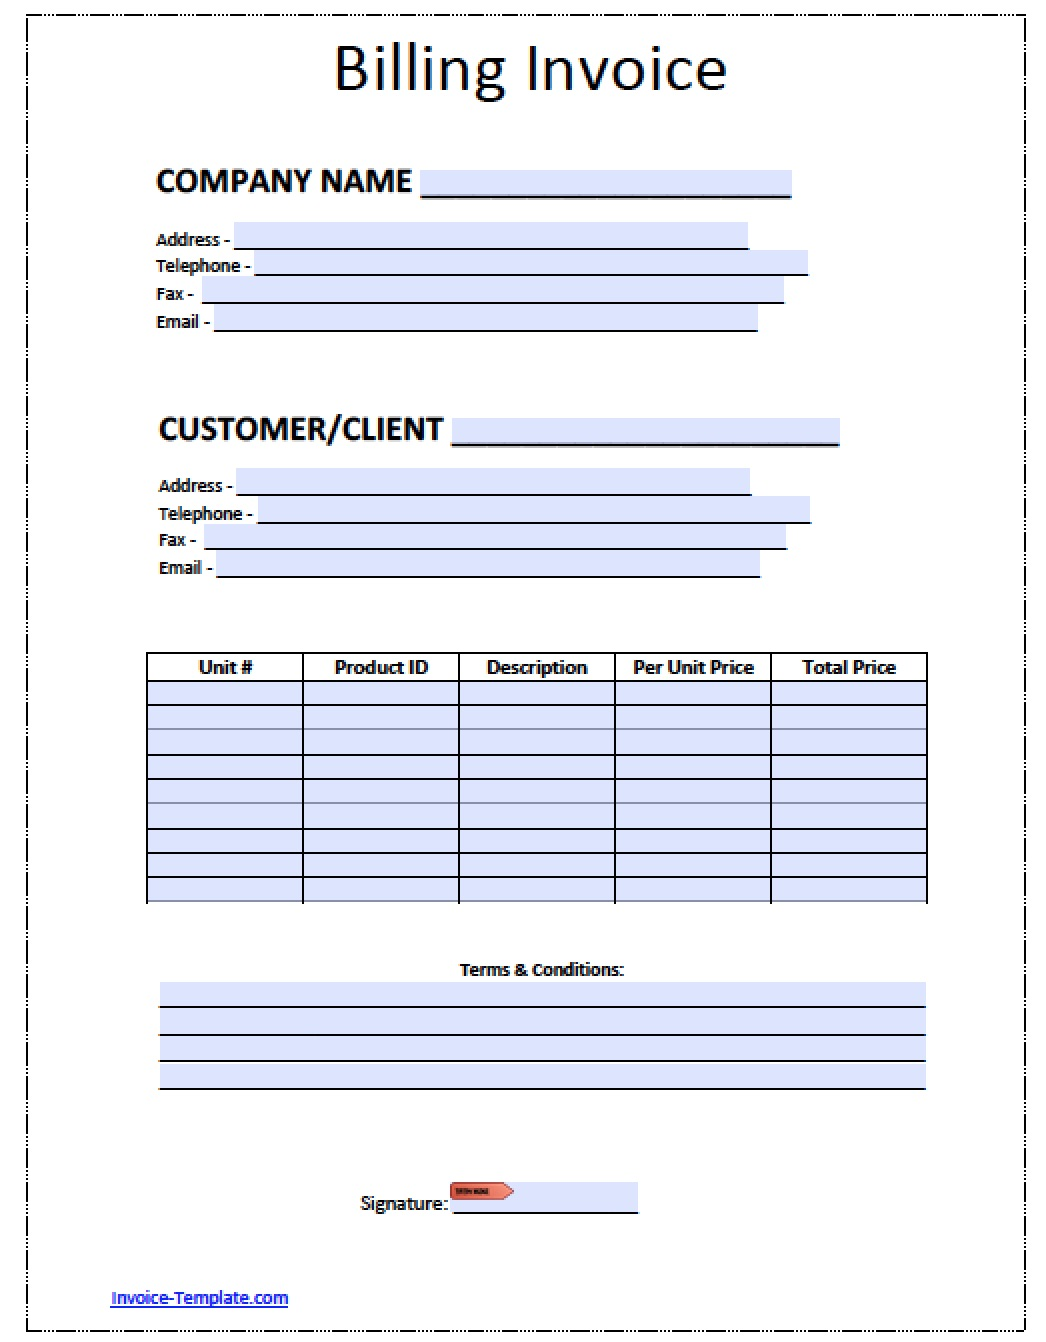 Free Printable Billing Invoice Forms Filename | radio merkezi